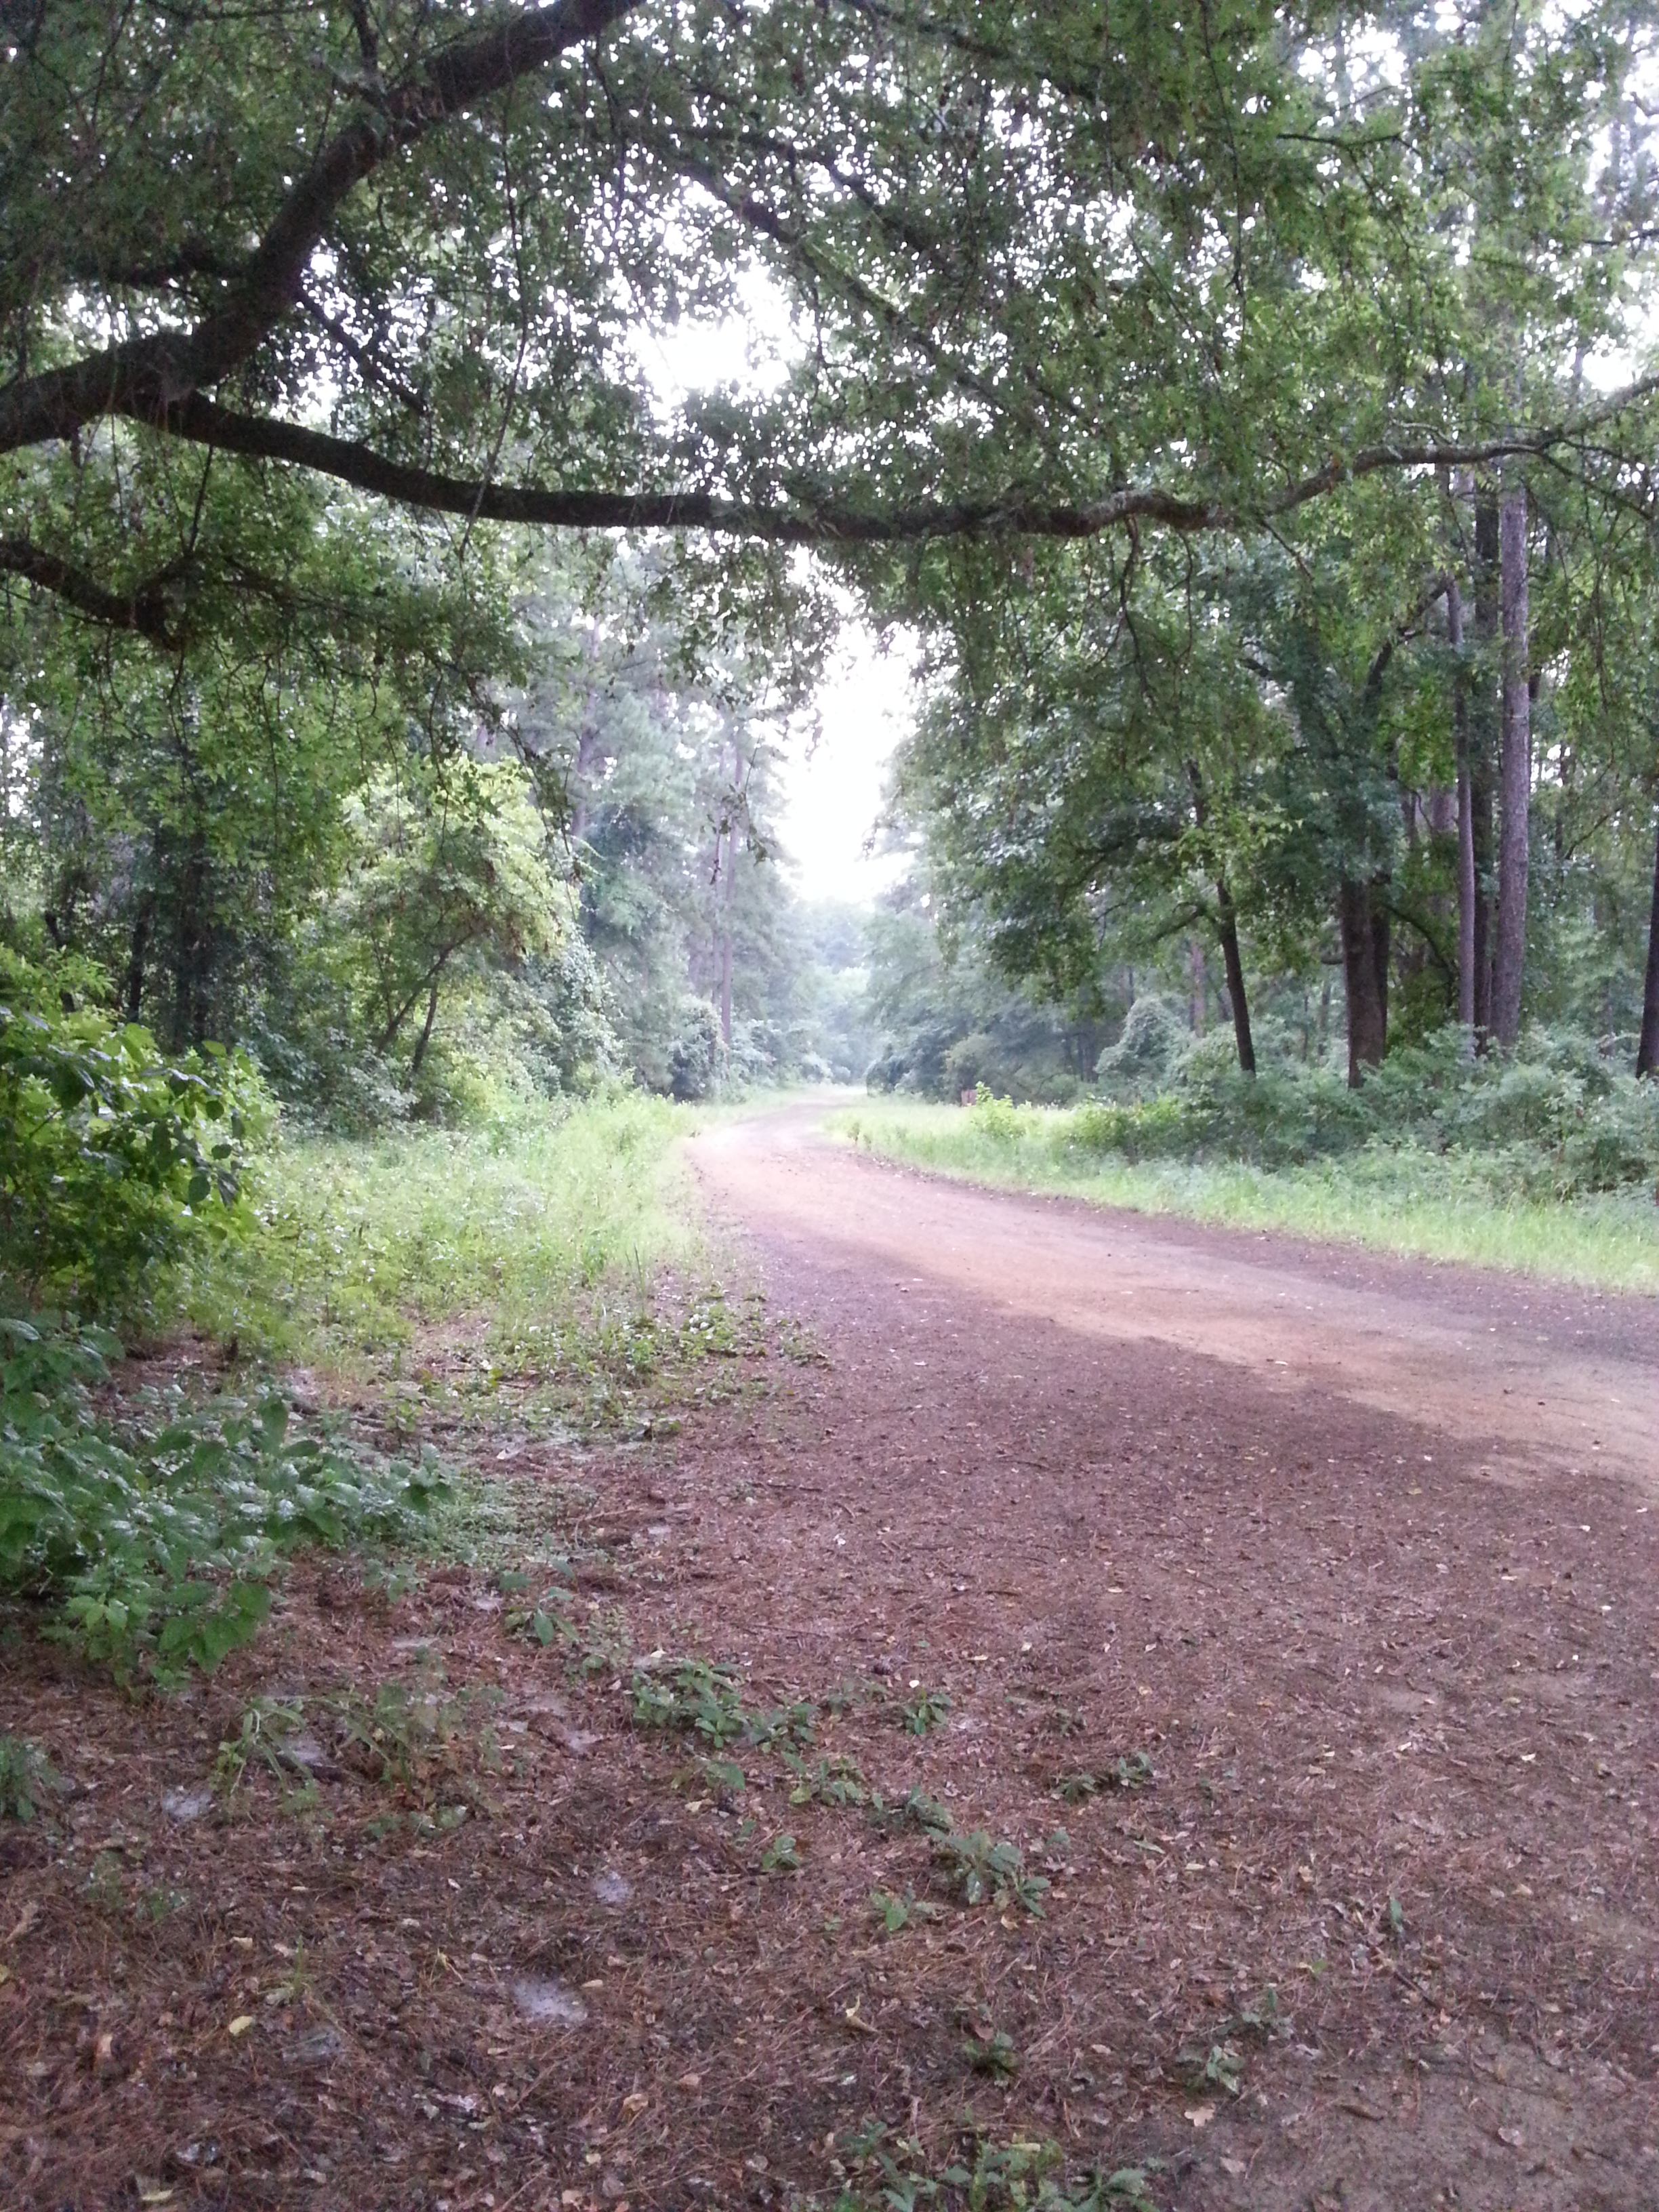 The gravel/dirt road leading out of my campsite back to civilization